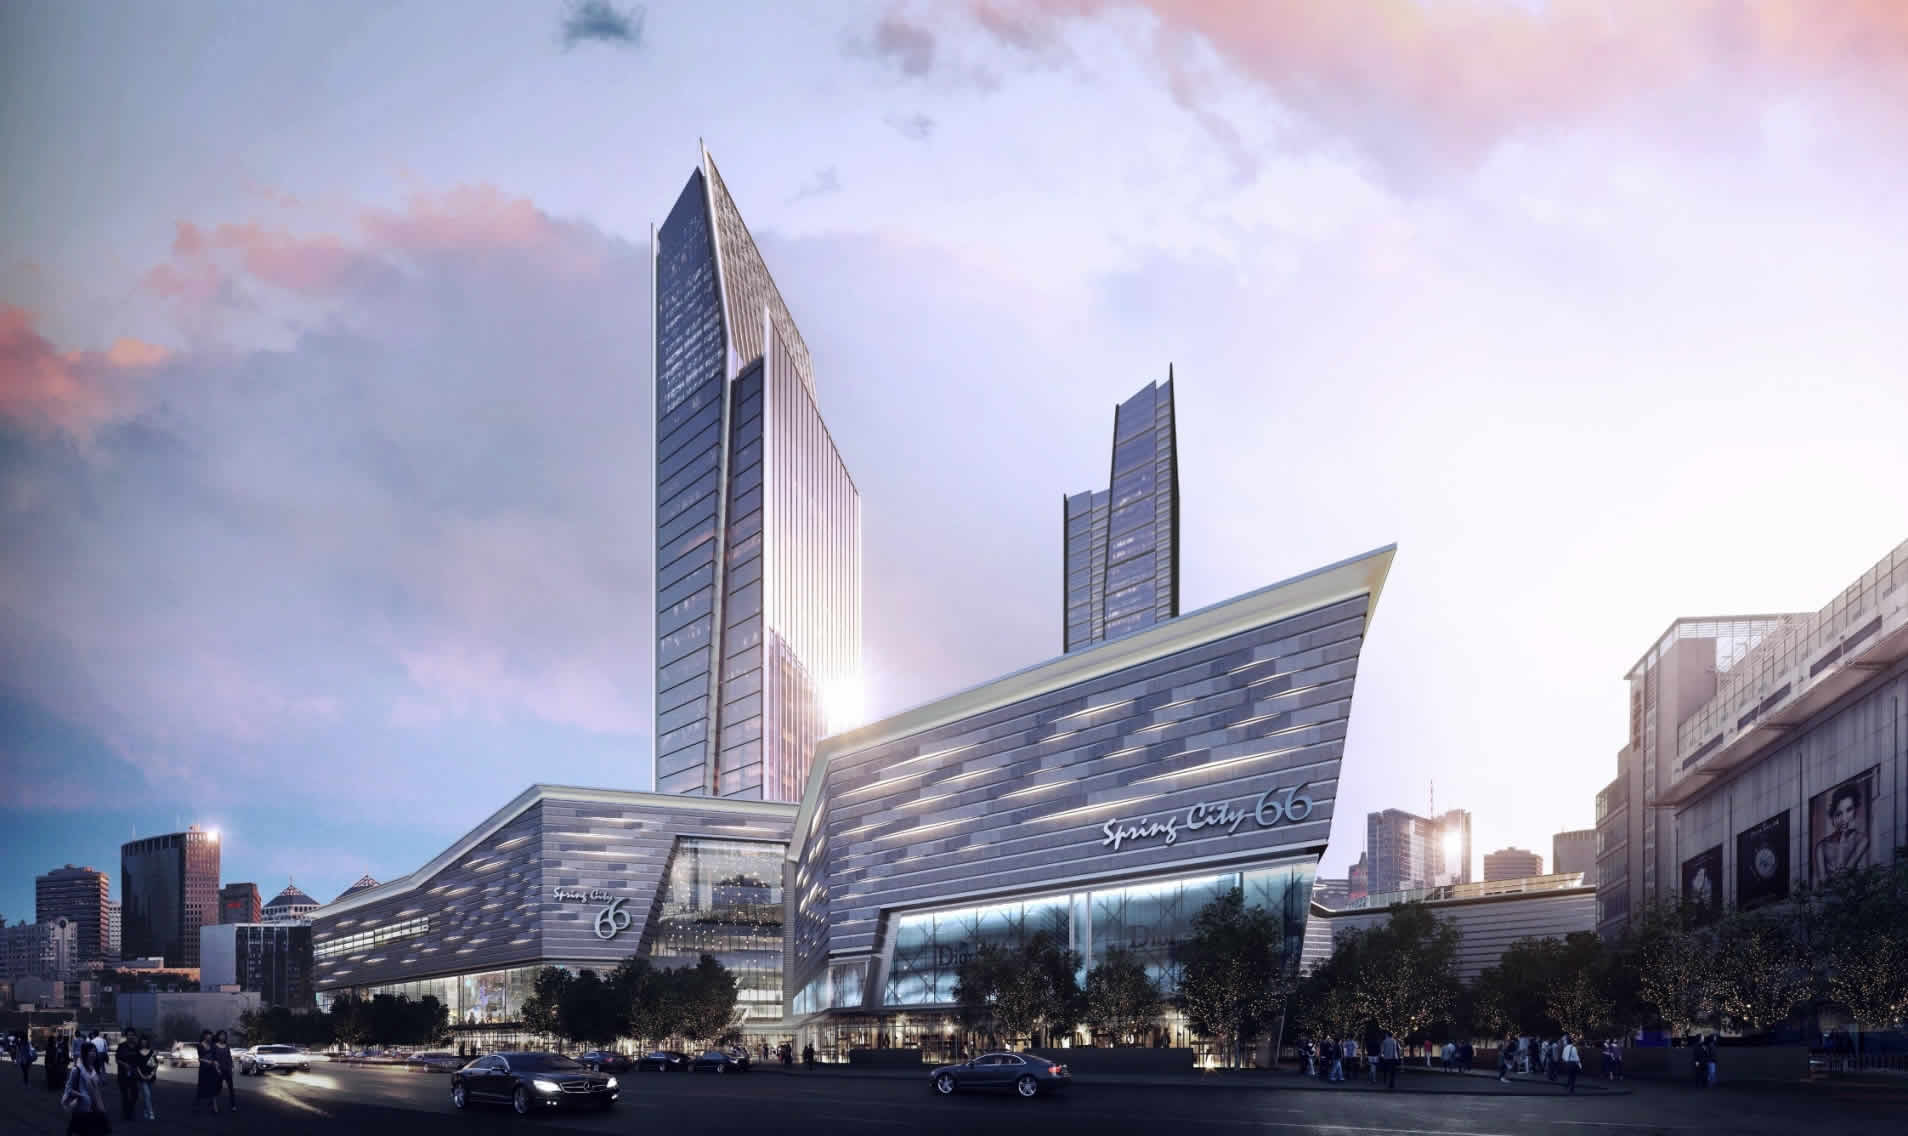 Built by a world-renowned construction team, the mall of Spring City 66 is expected to be open in mid-2019 and is poised to become Kunming's most striking landmark.